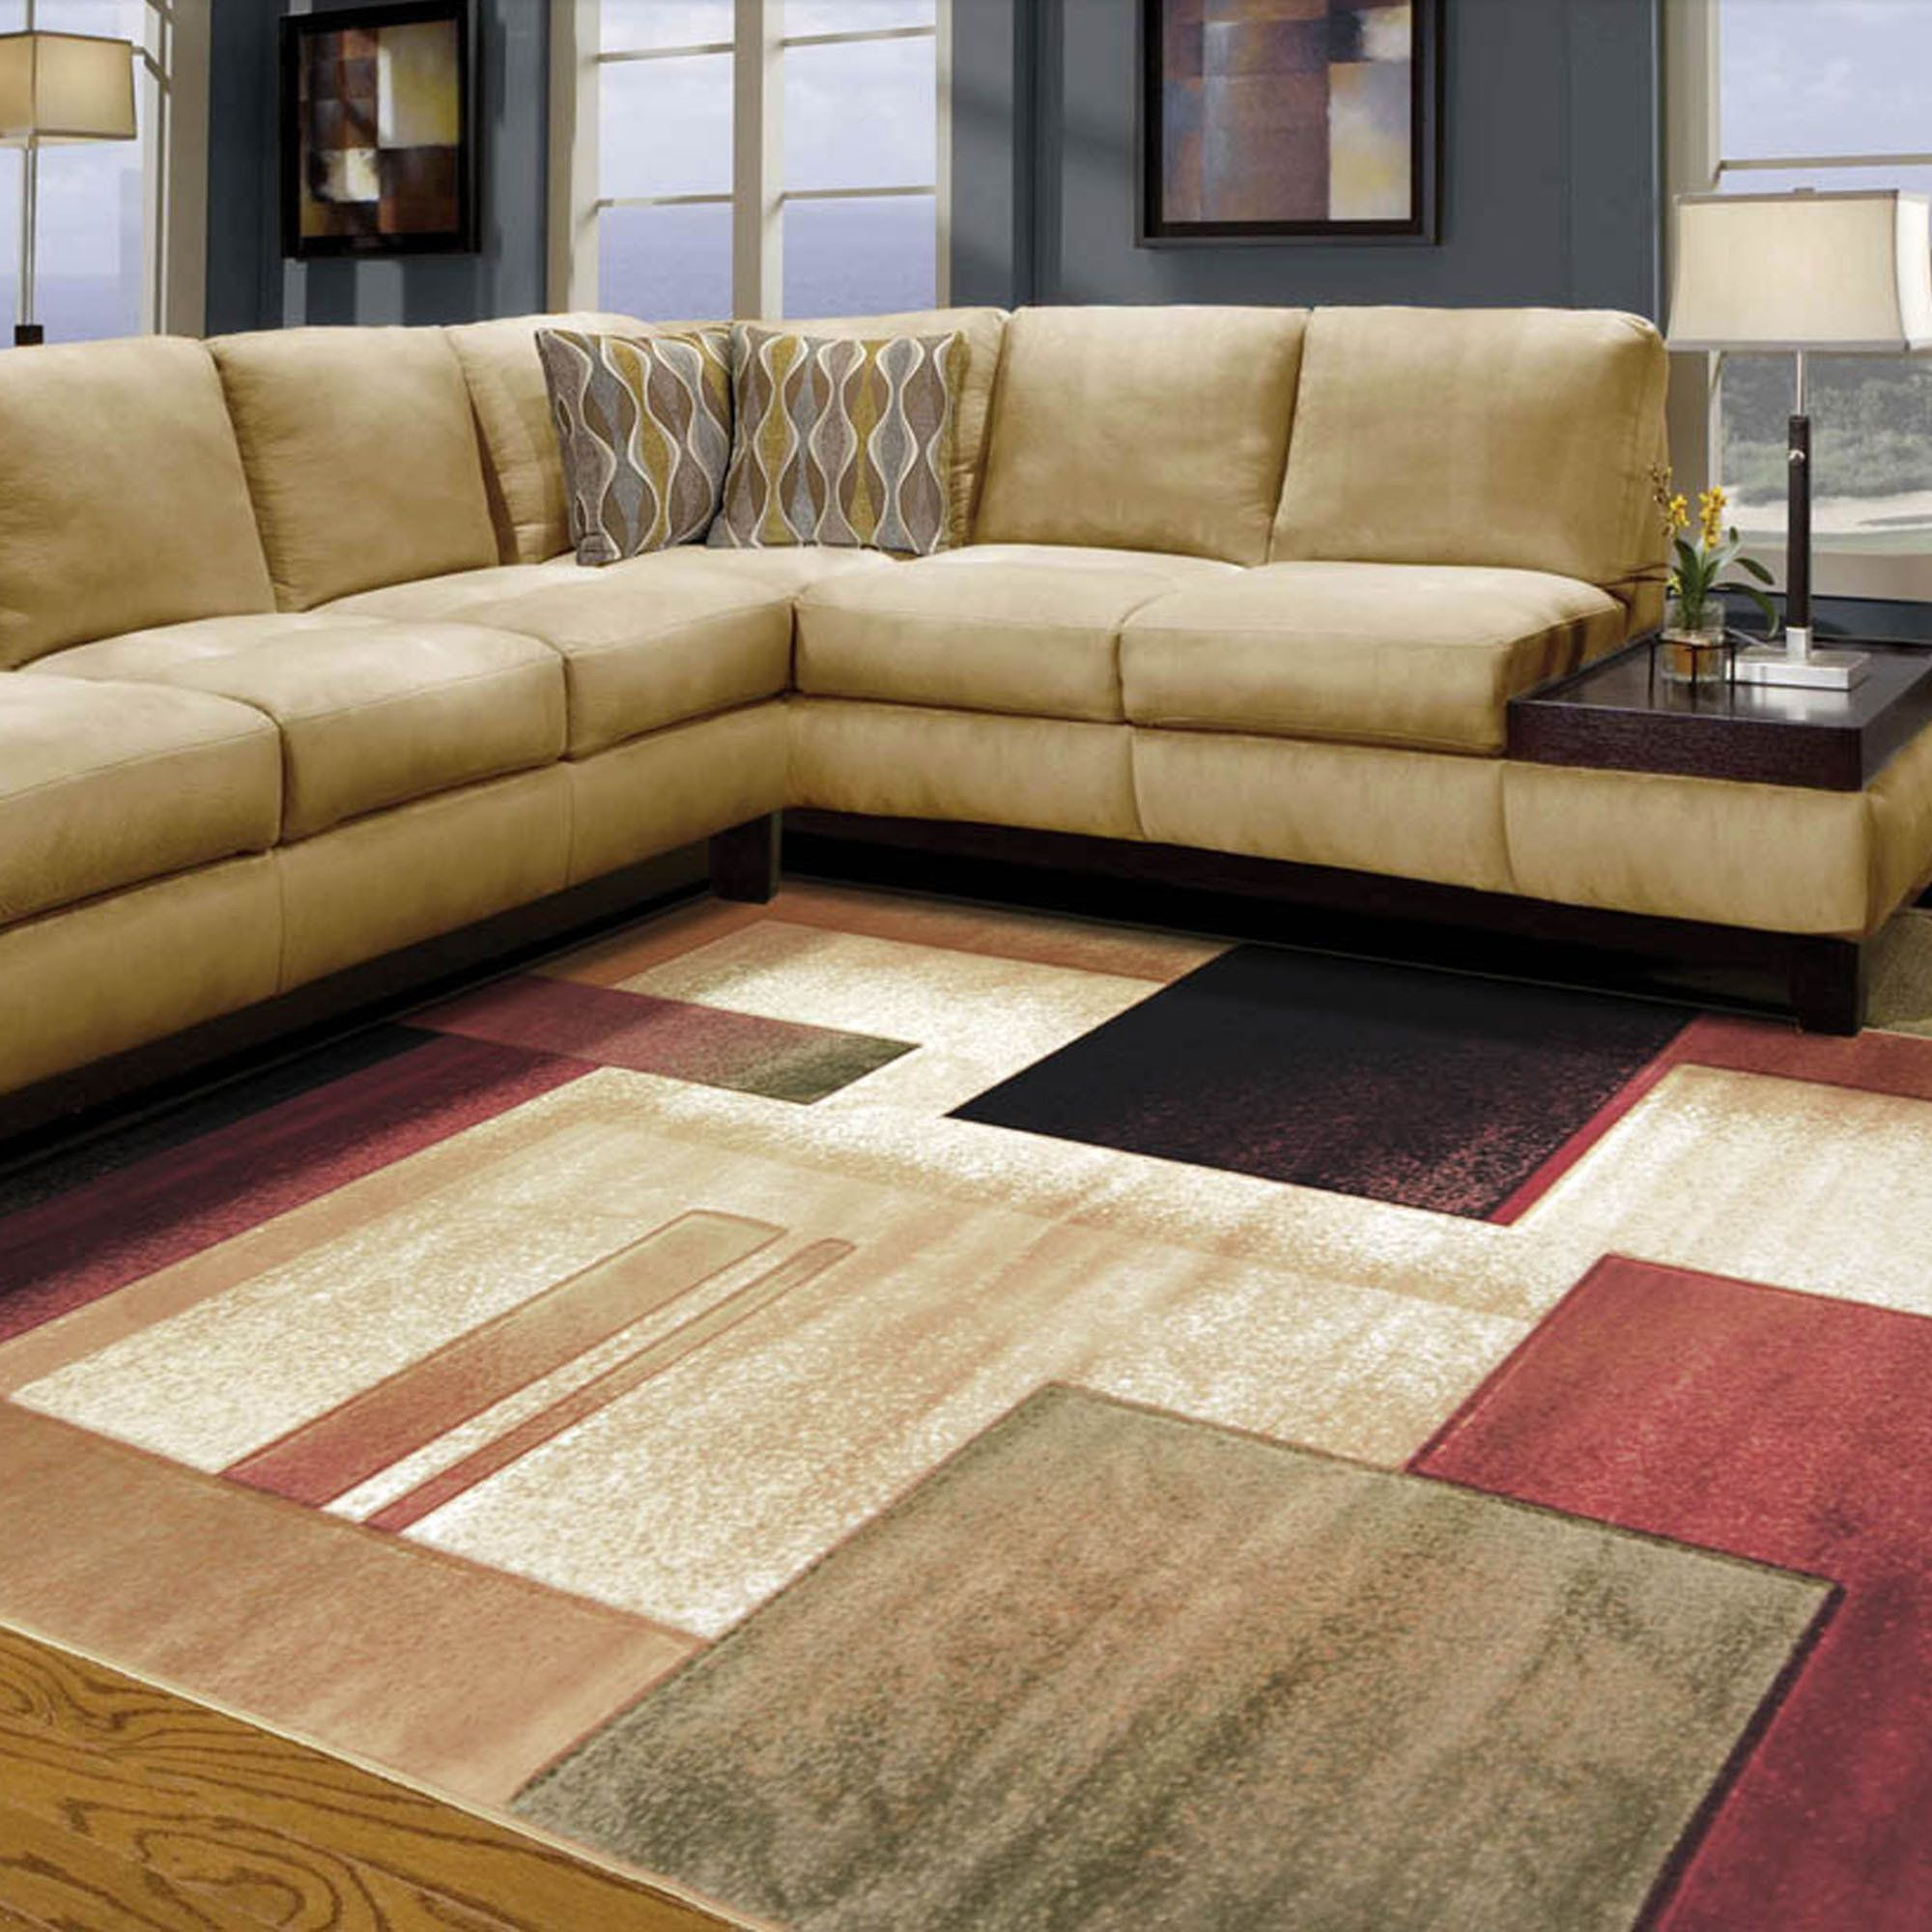 Contemporary Living Room Rug modern area rugs for living room lightandwiregallerycom. gallery